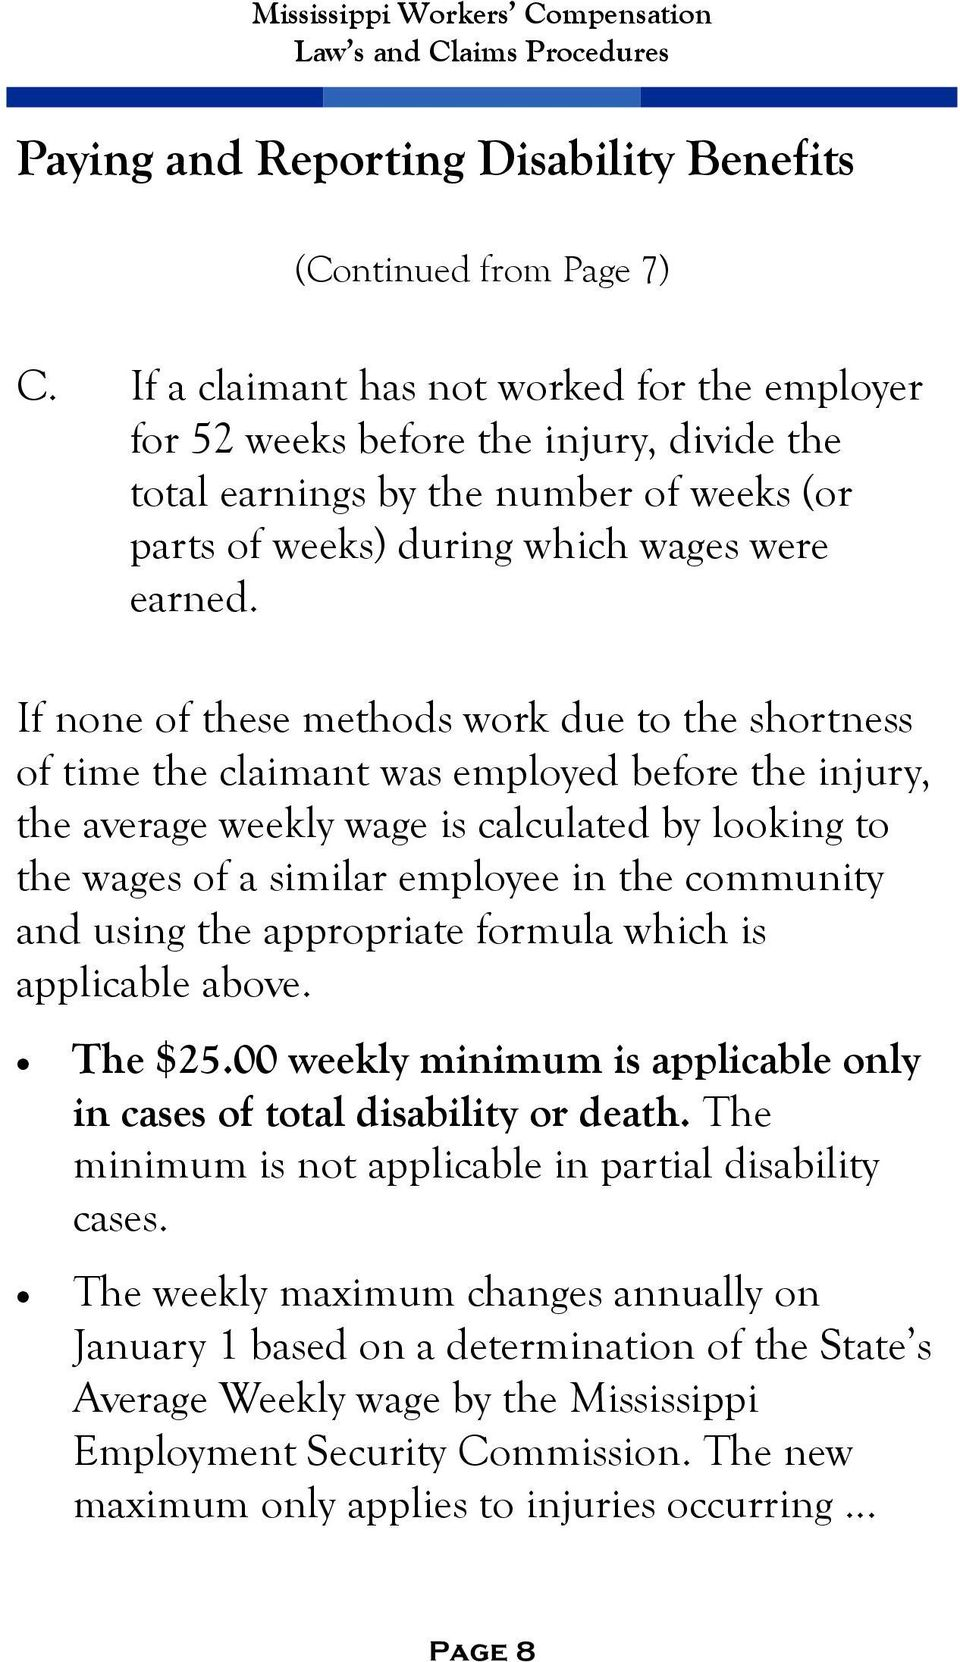 If none of these methods work due to the shortness of time the claimant was employed before the injury, the average weekly wage is calculated by looking to the wages of a similar employee in the